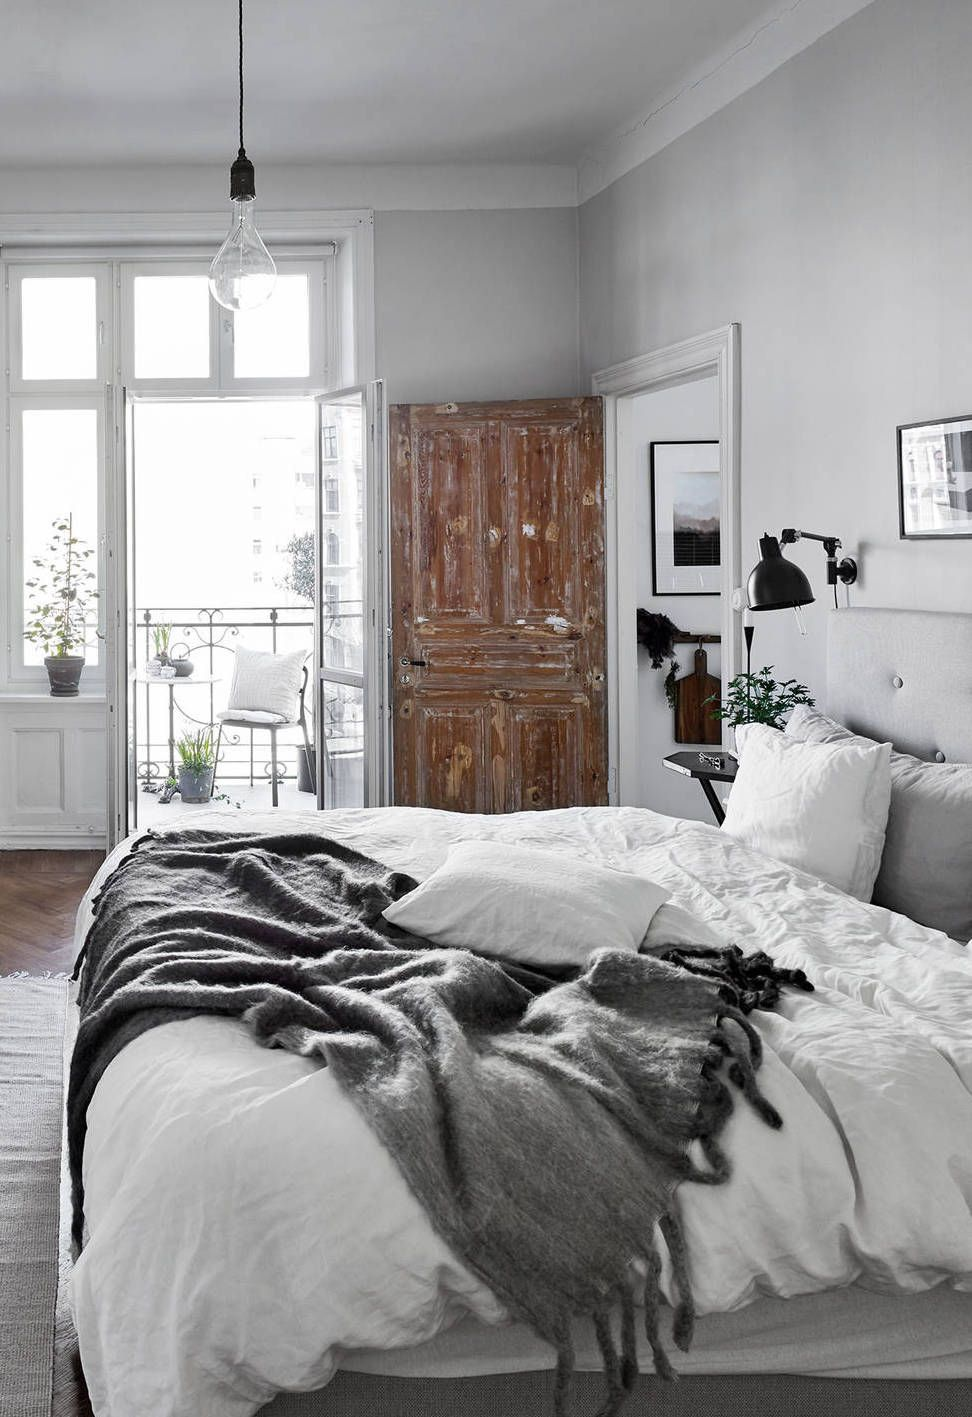 Last Century Home Coco Lapine Design Home Home Bedroom Bedroom Design